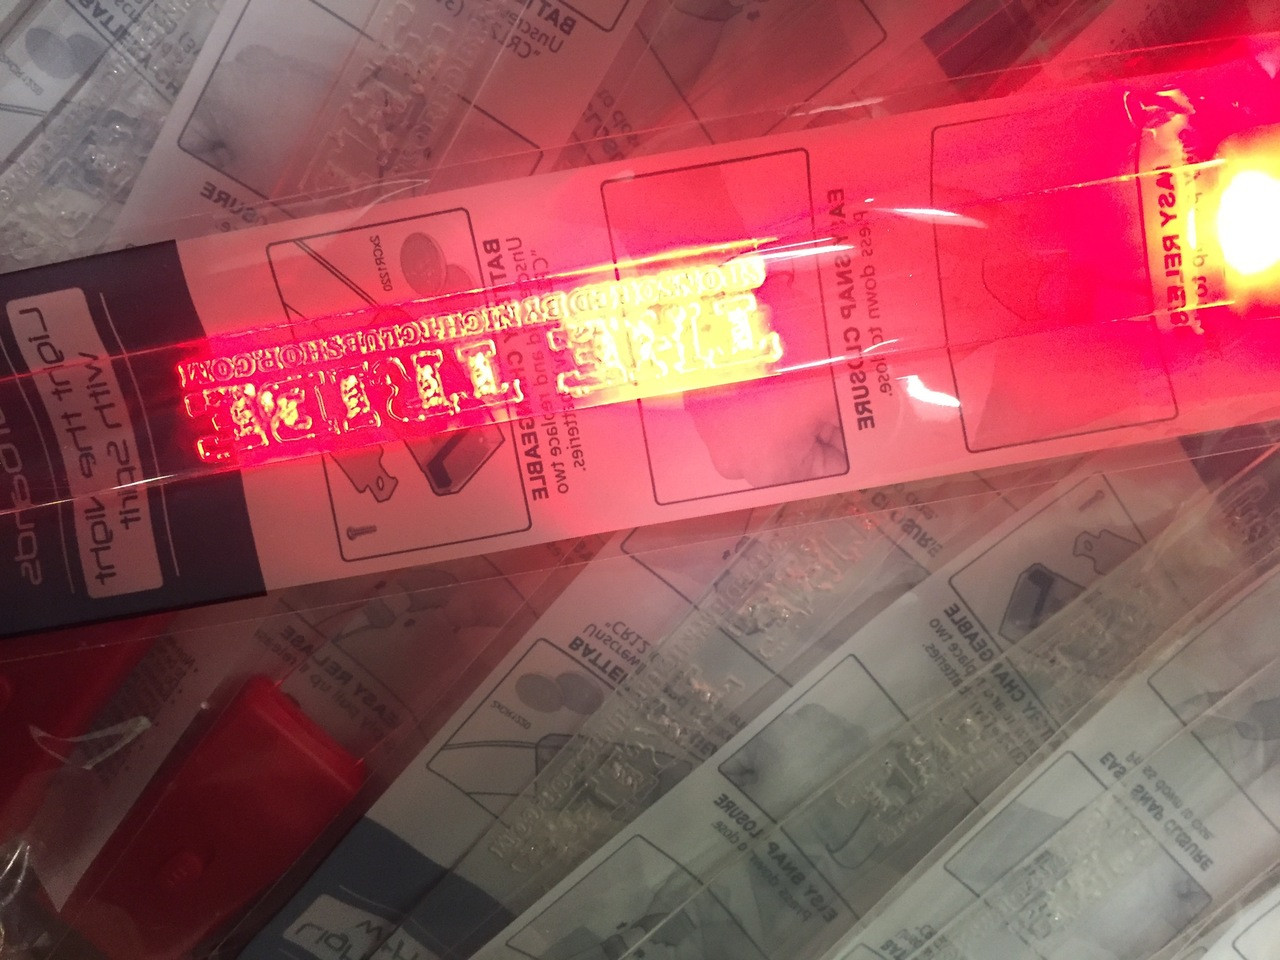 engraved,packaged,Sound,reactive,activated, custom, LED, Wristband,bracelet, sports,charity,school, nightclub, VIP, fundraiser, sound activated, music,flashing,LED wristband